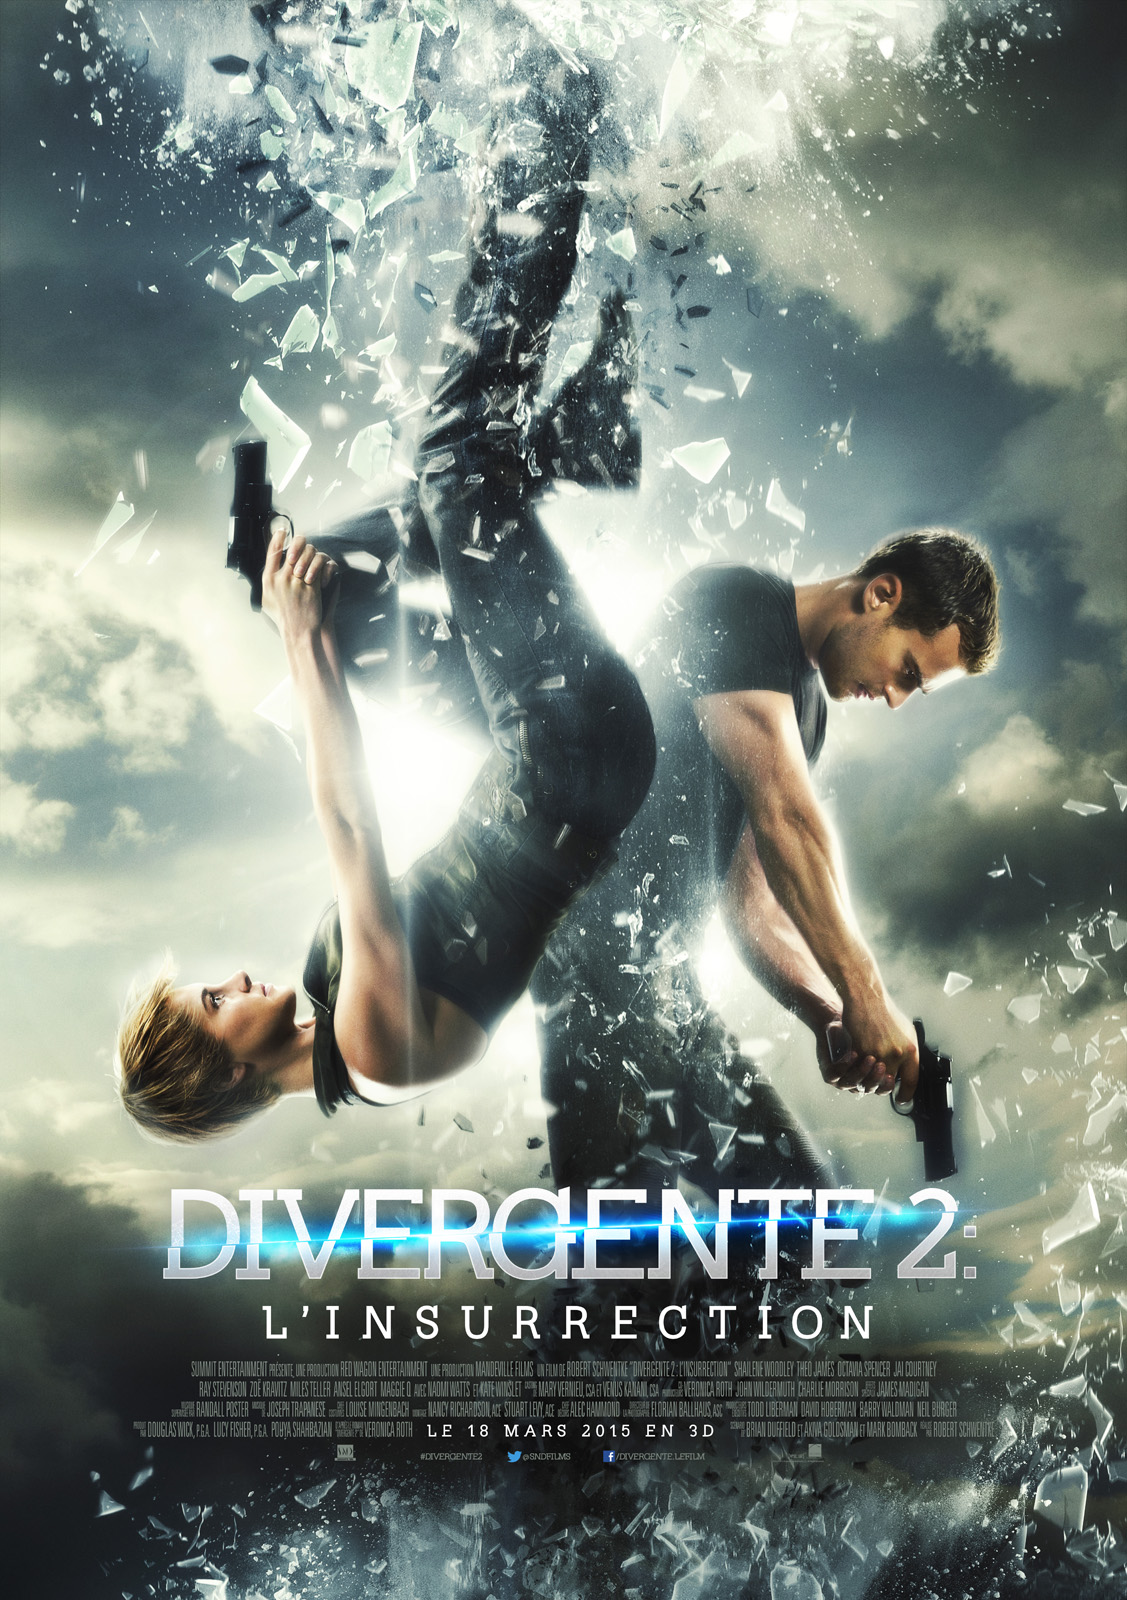 Divergente 2 : l insurrection